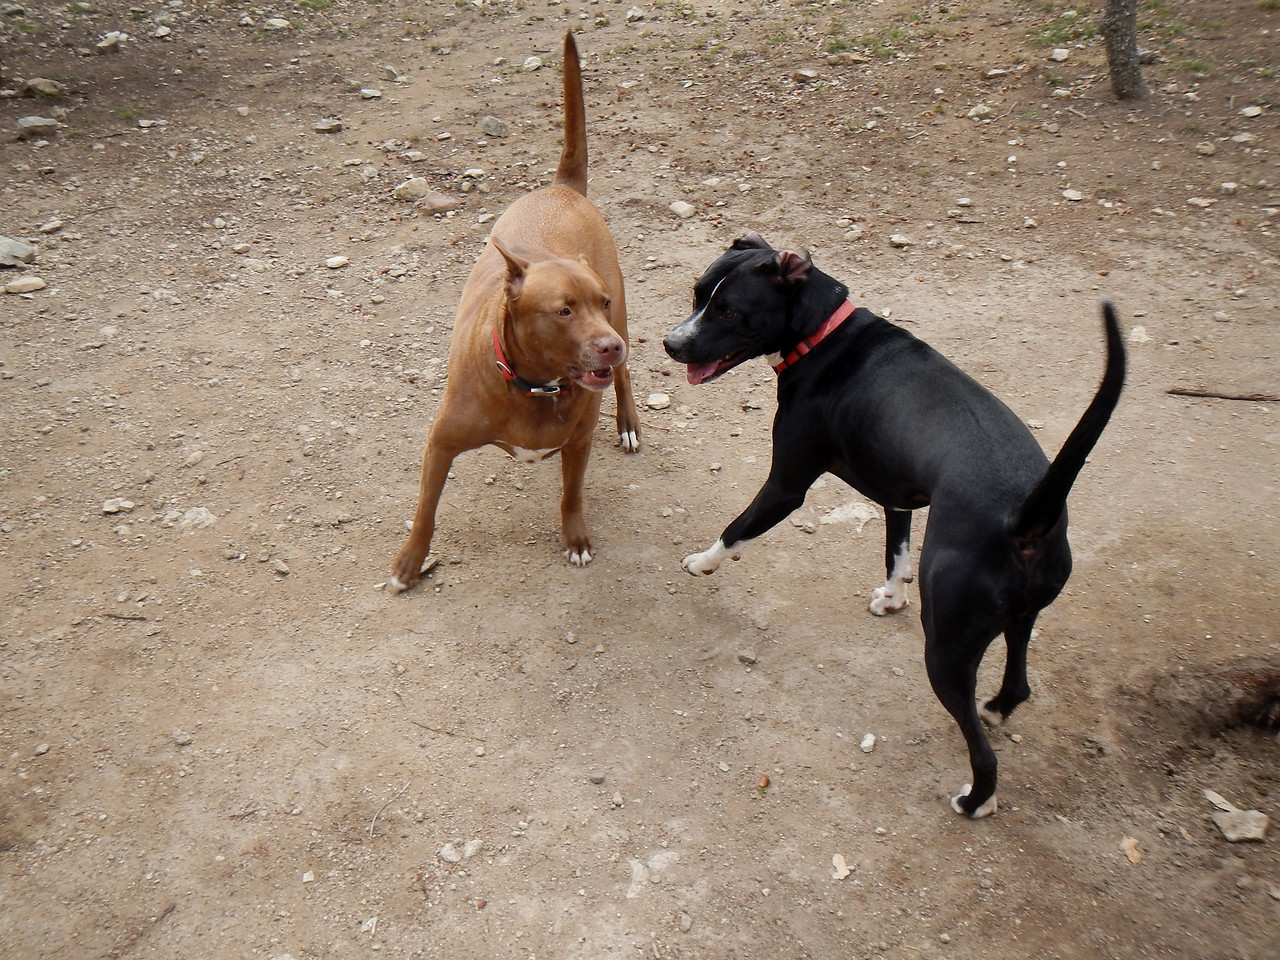 Charlie B  and Ziggy getting their play on